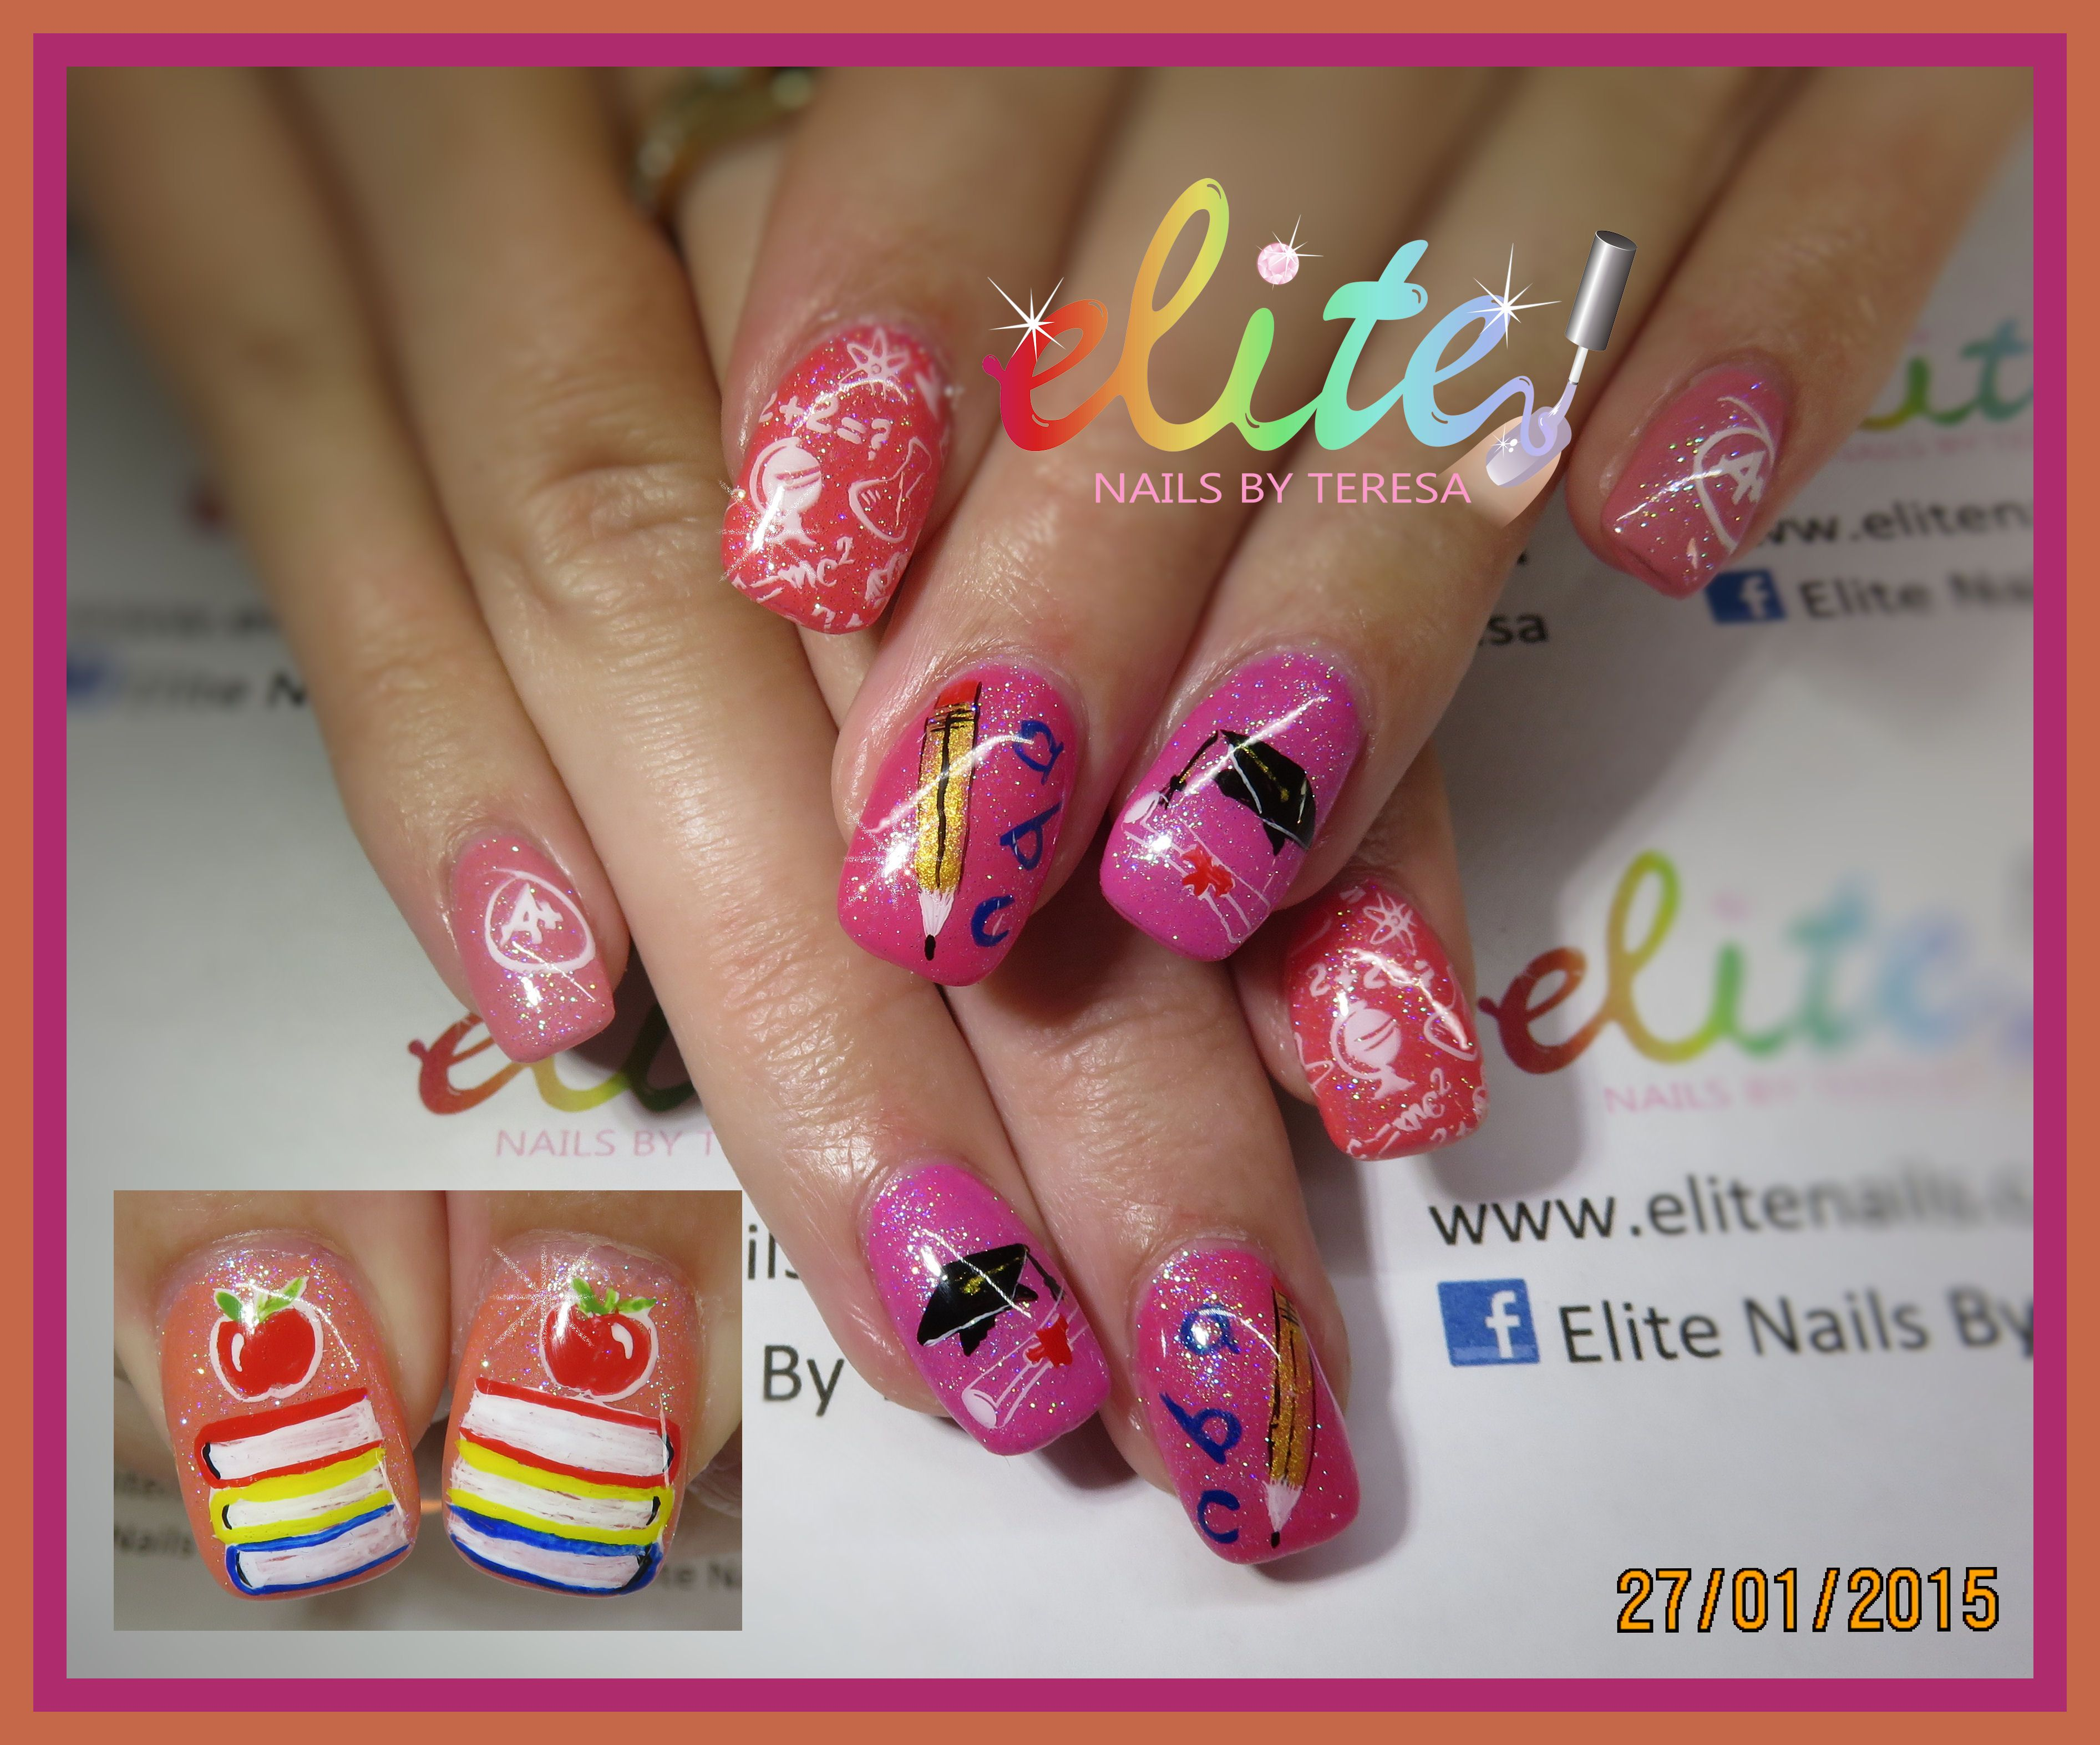 Back to school books apple pencil abc maths pink nails nail art ...